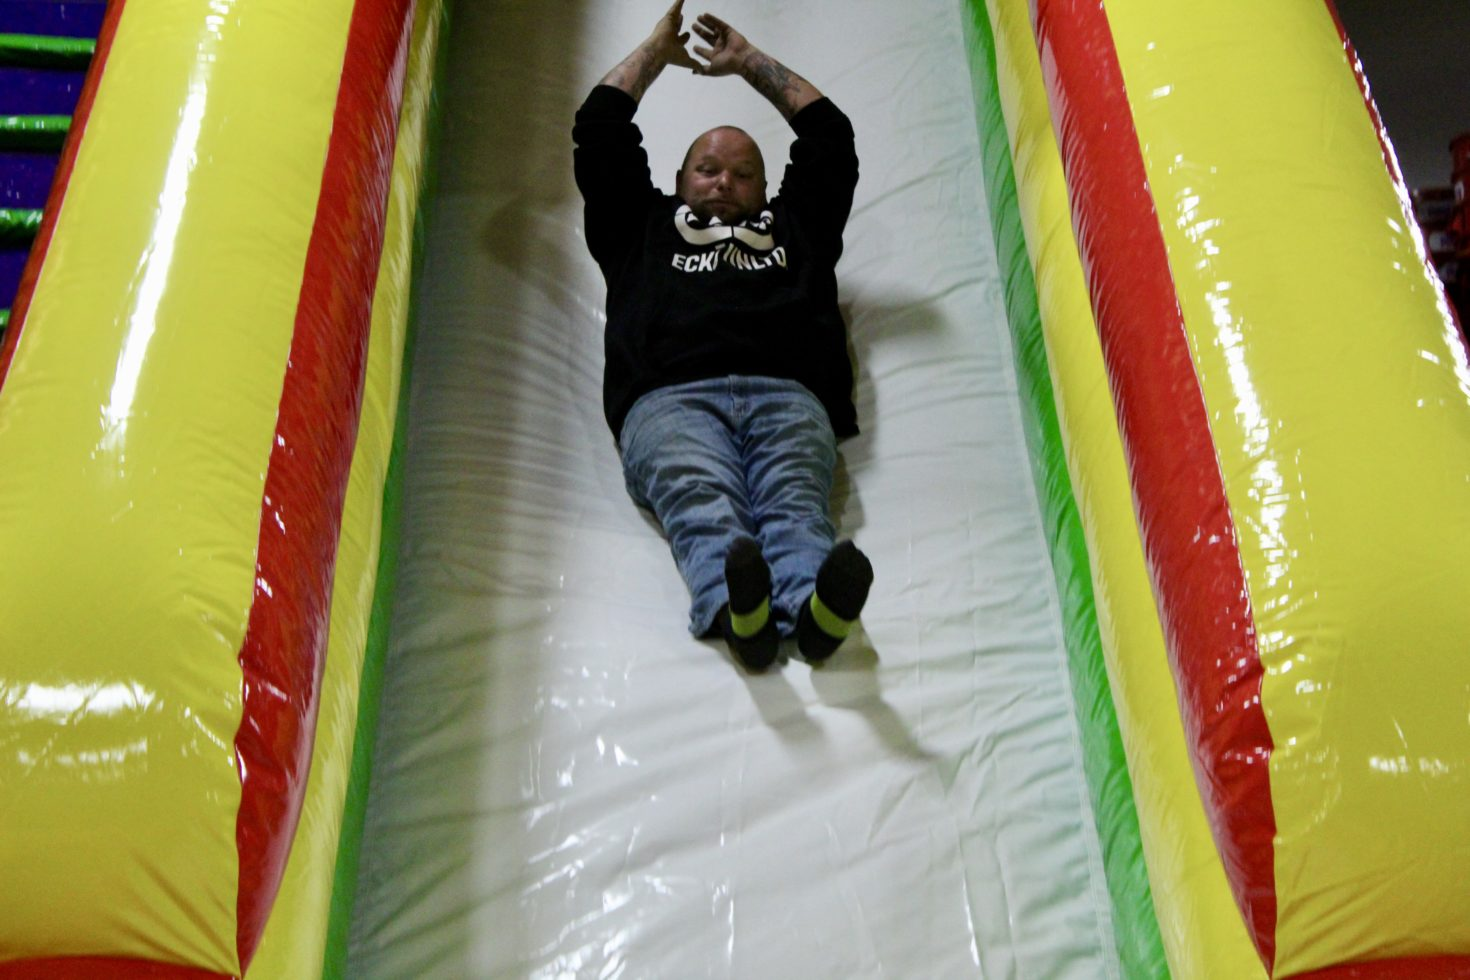 Guy sliding down commander slide